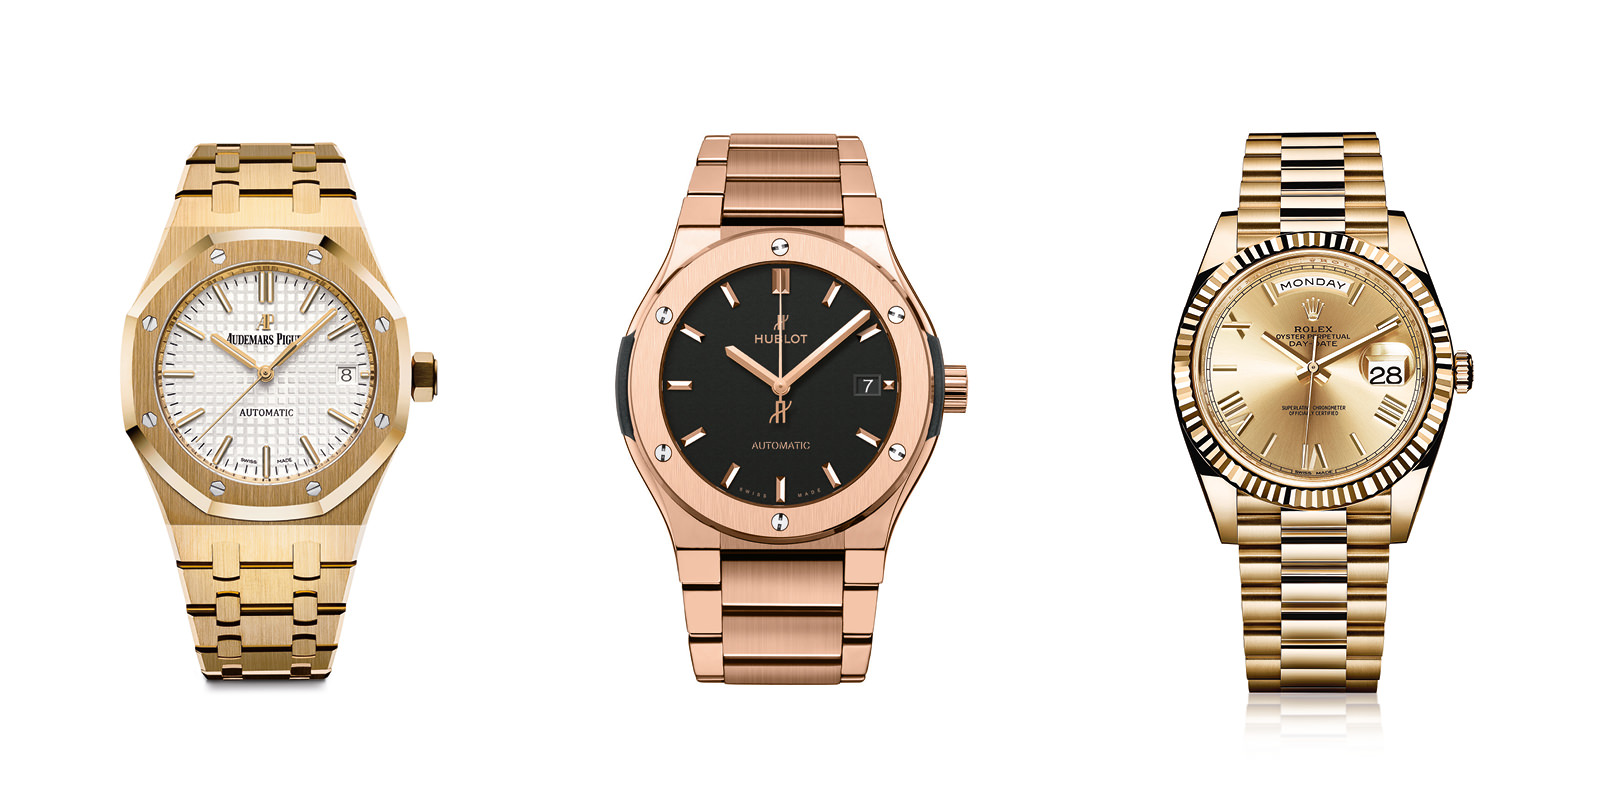 From left to right:  Royal Oak automaticgoldwatch, AUDEMARS-PIGUET.  Classic Fusion 45mm King Gold Braceletking18 caratswatch,HUBLOT.  Oyster Perpetual Day-Date 40gold 18 ct watch,ROLEX.  Selection by Rebecca Bleynie.